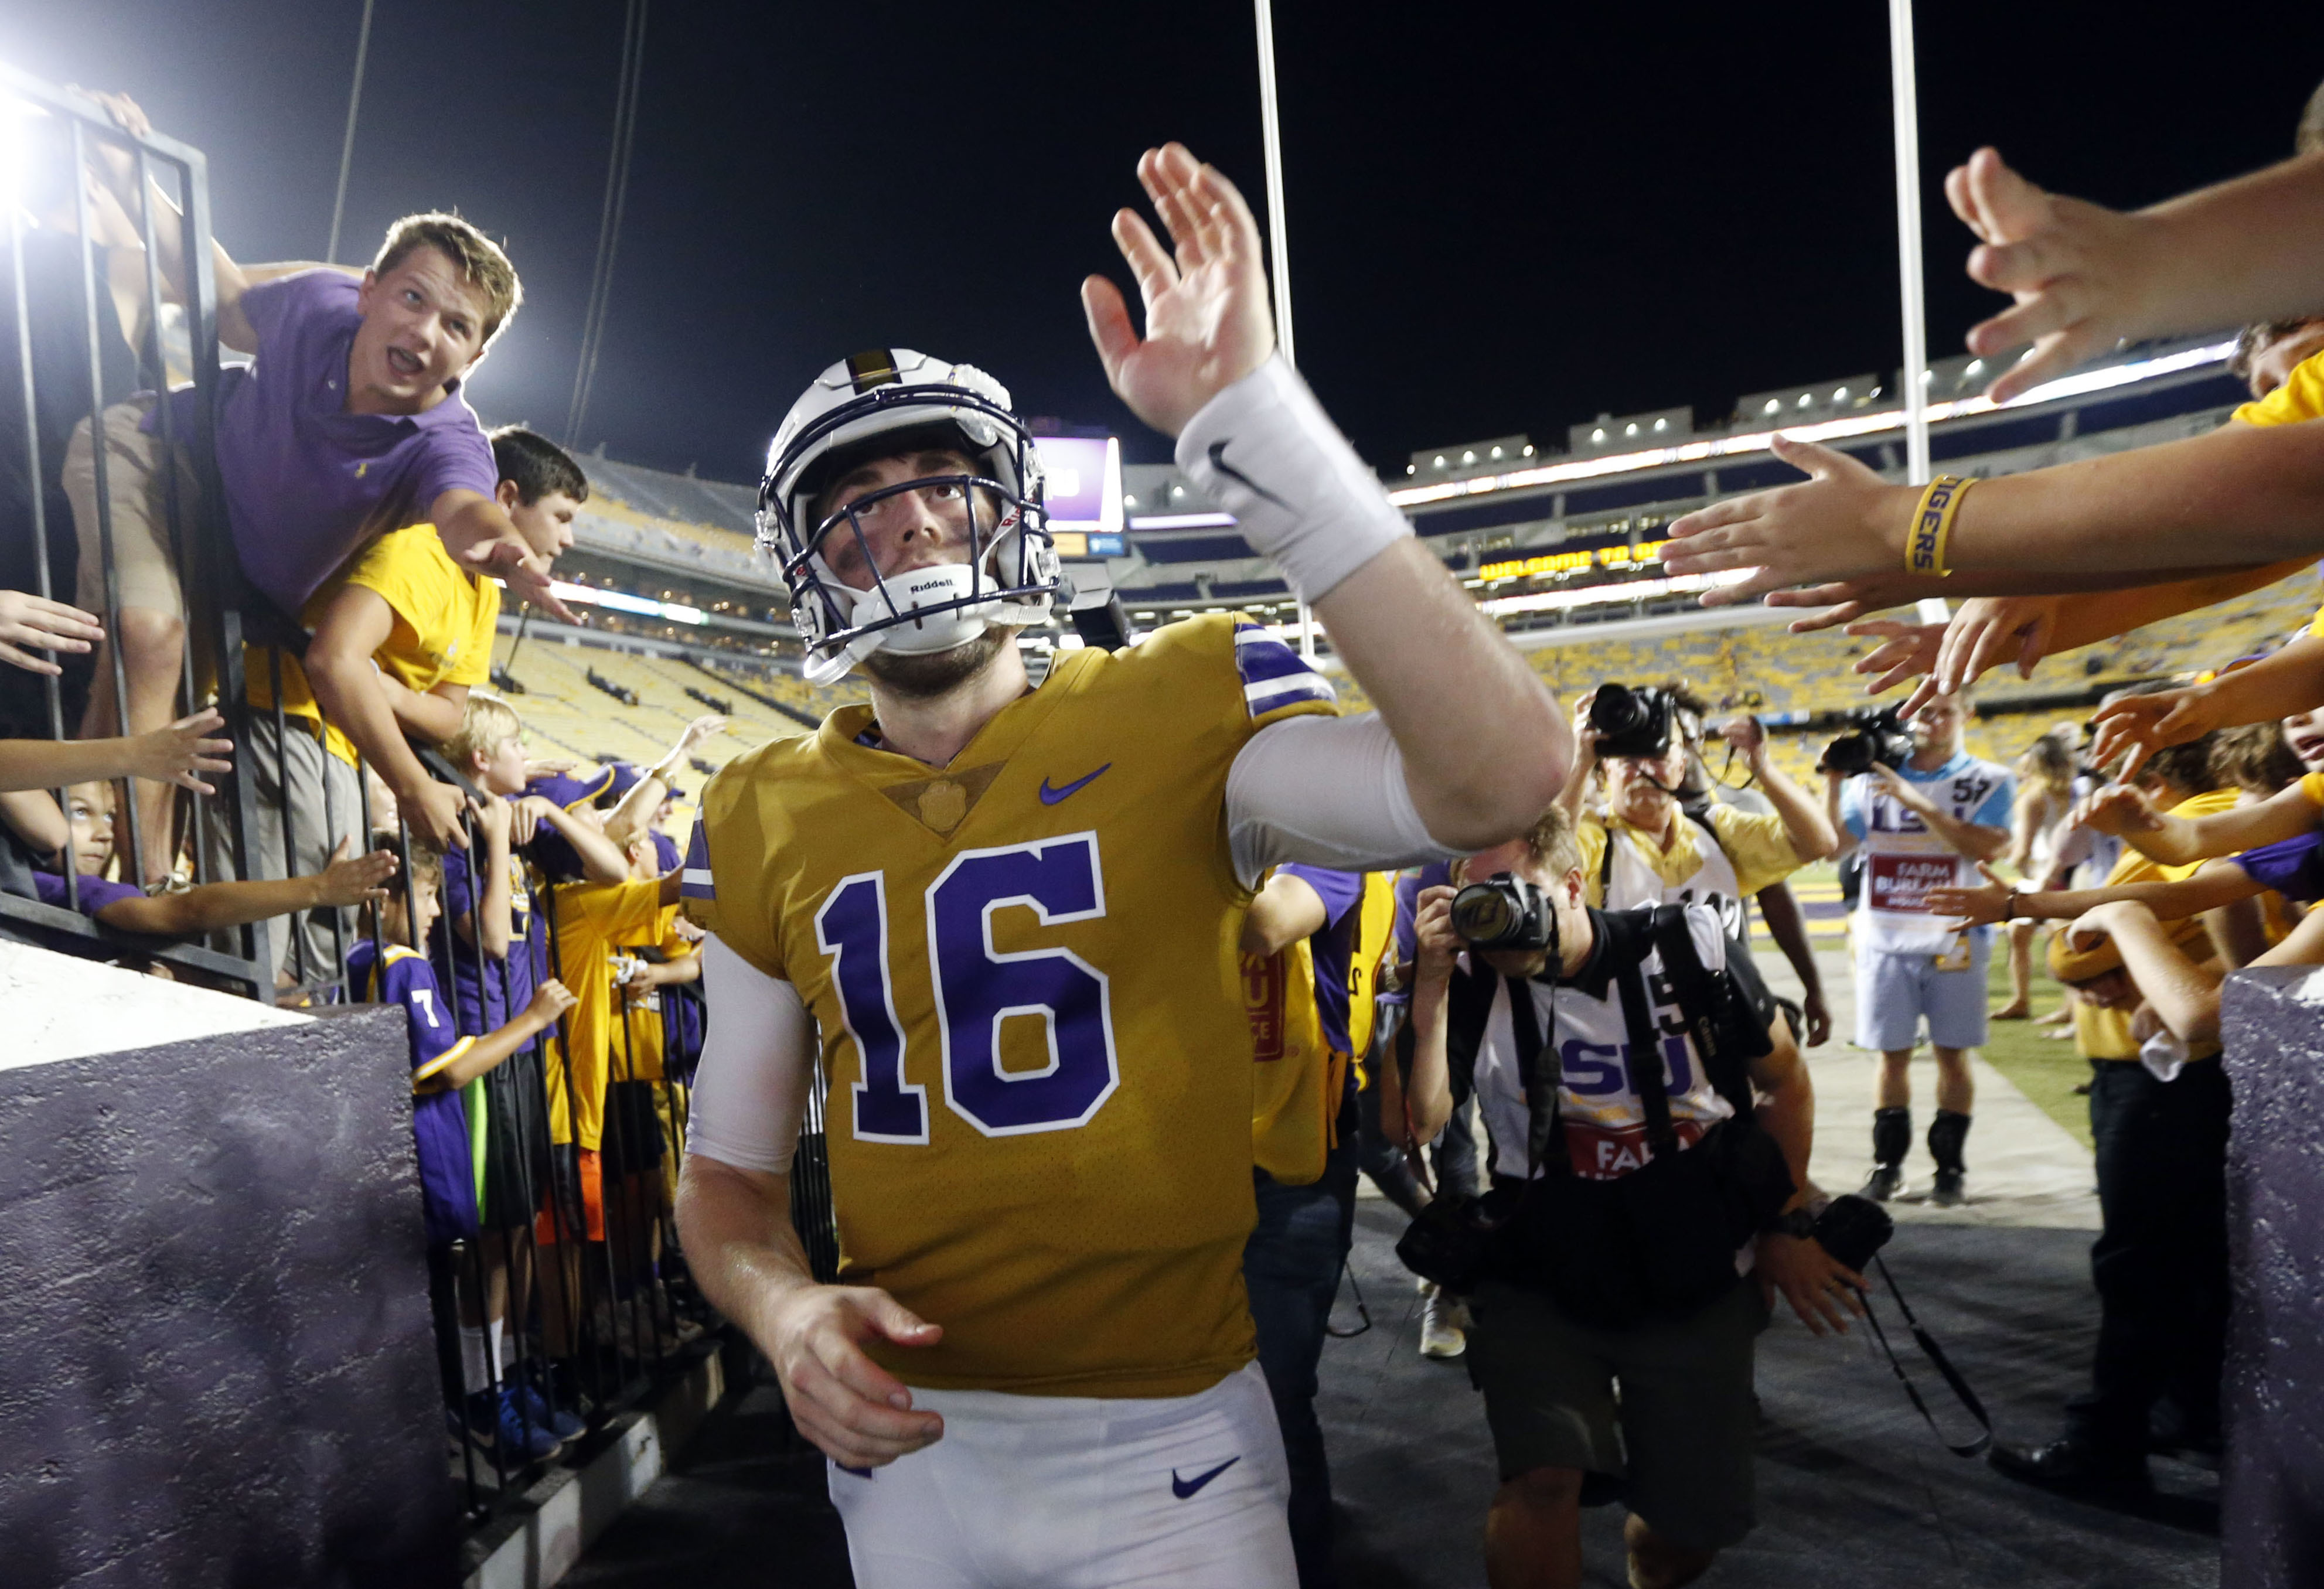 LSU quarterback Danny Etling (16) greets fans after an NCAA college football game against Mississippi Statein Baton Rouge, La., Saturday, Sept. 17, 2016. LSU win 23-20. (AP Photo/Gerald Herbert)